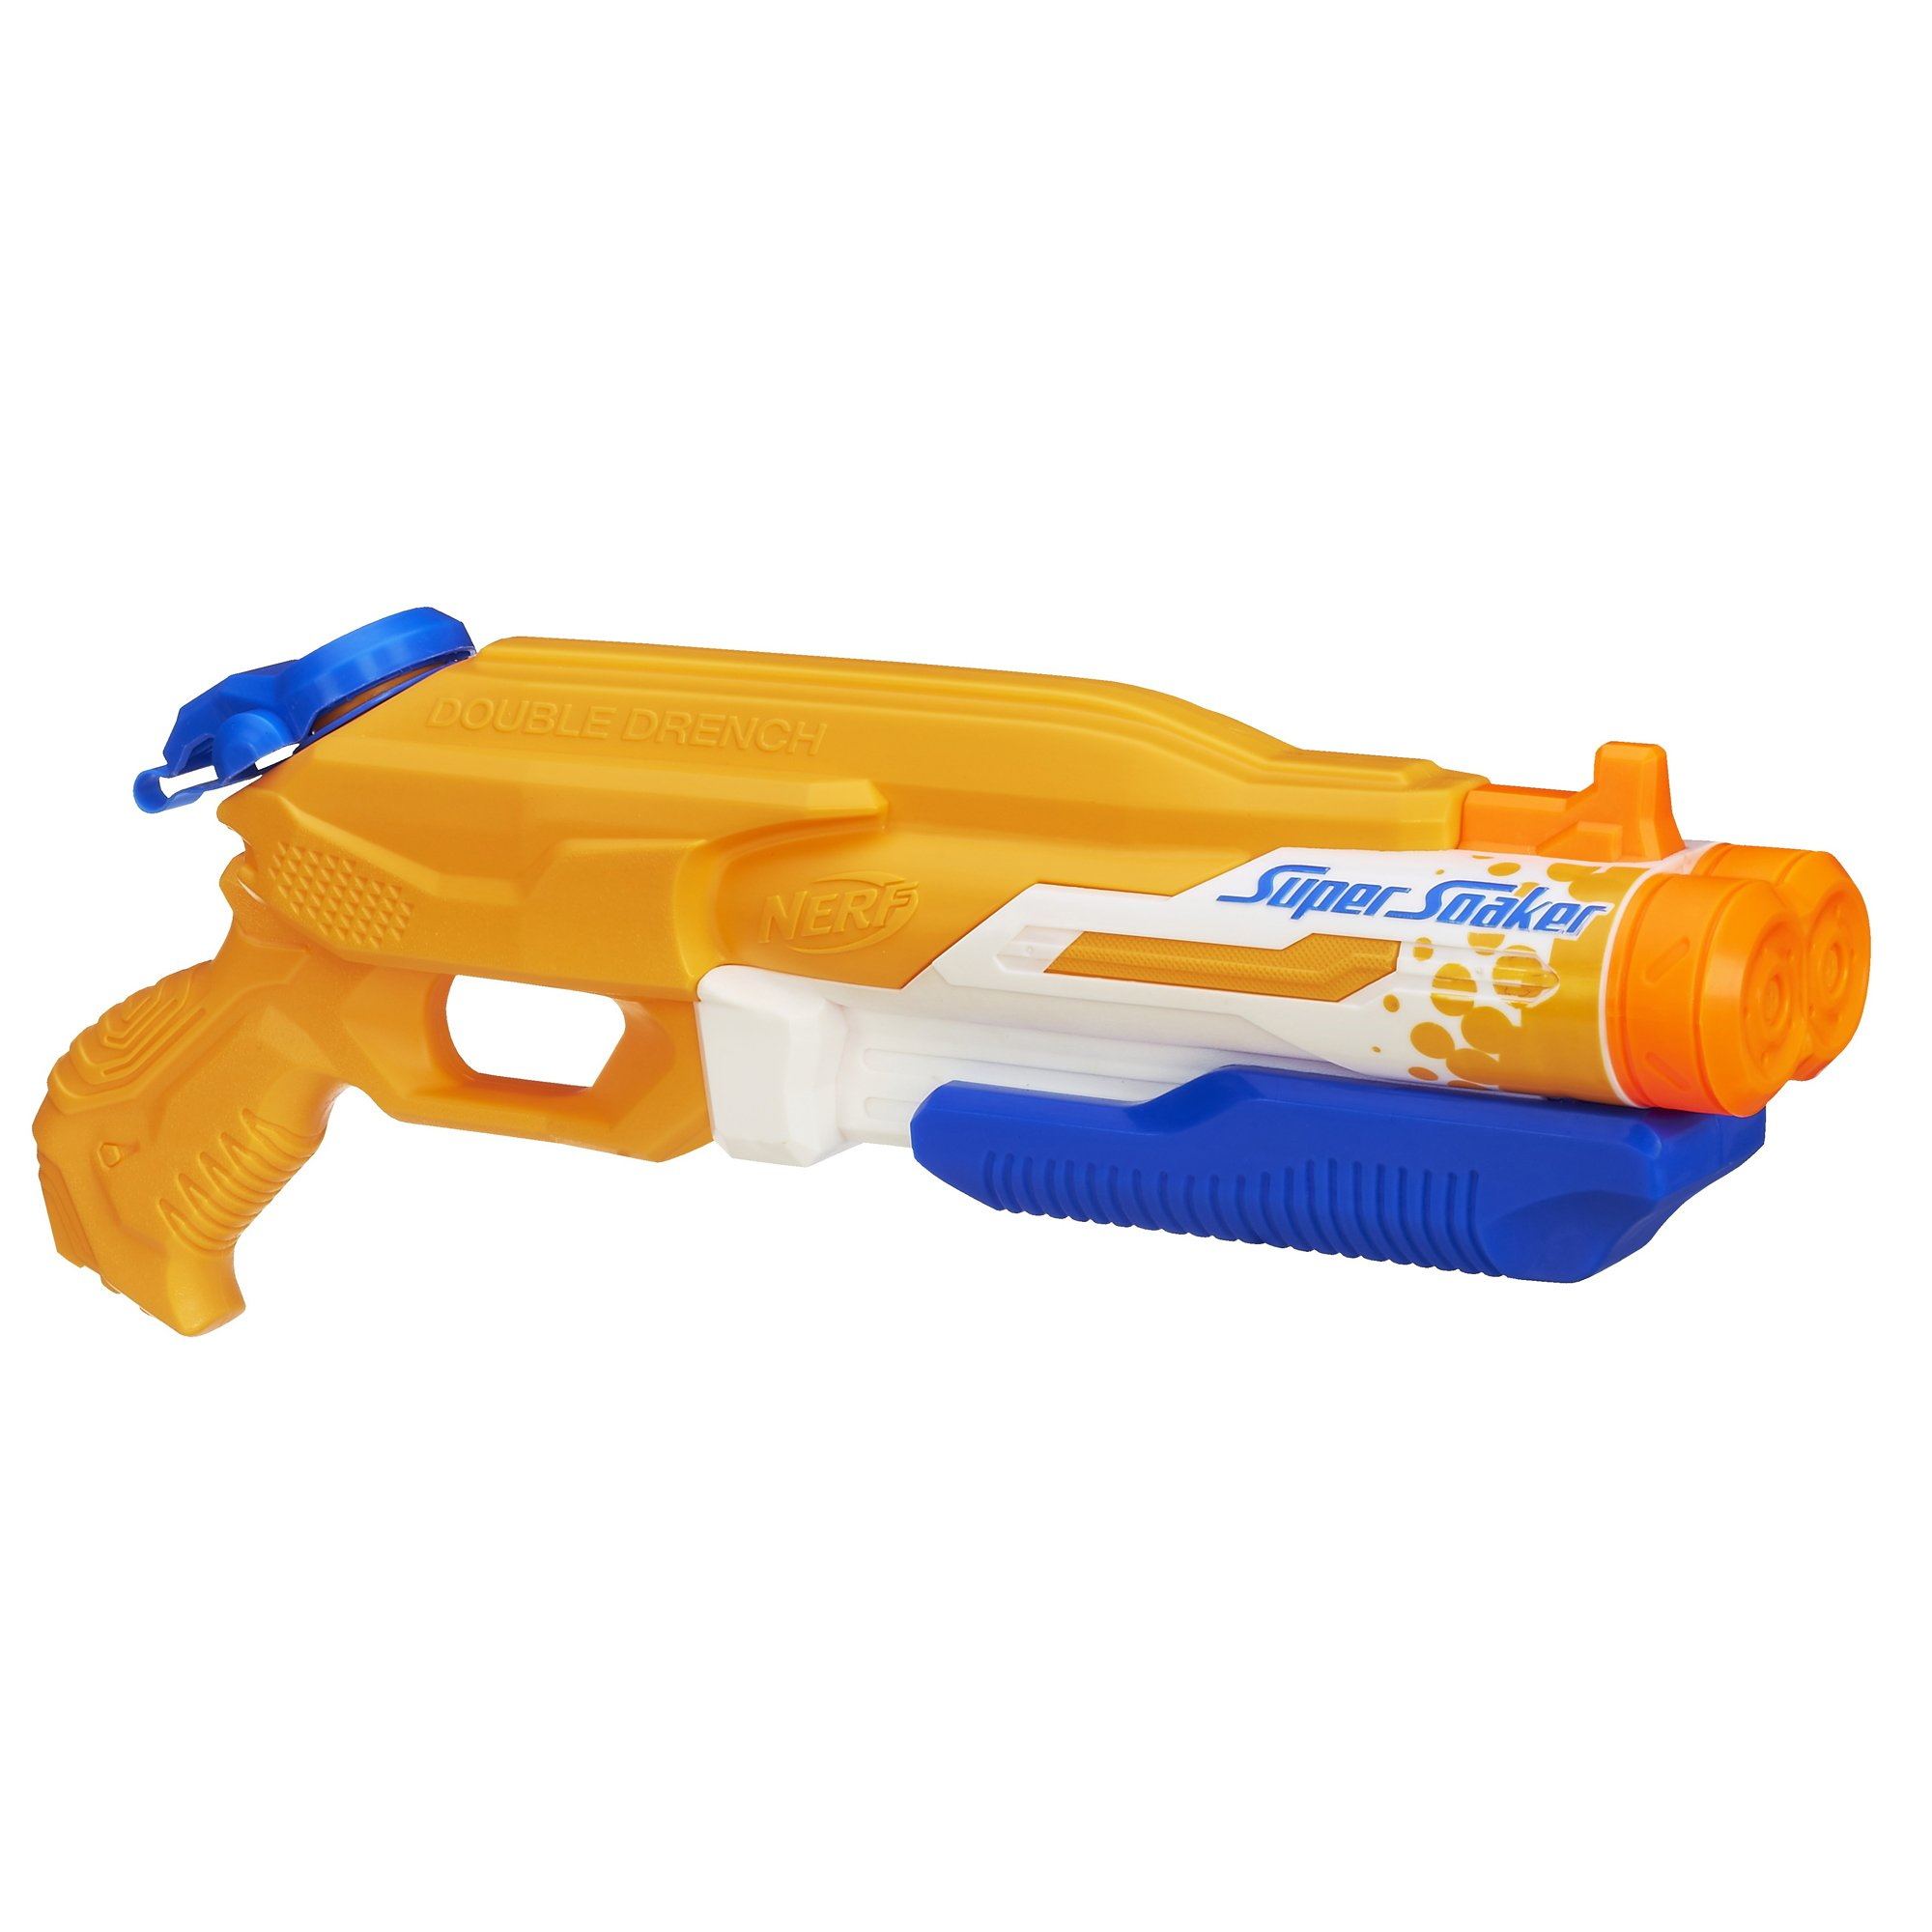 Nerf Super Soaker Double Drench Blaster by SUPERSOAKER